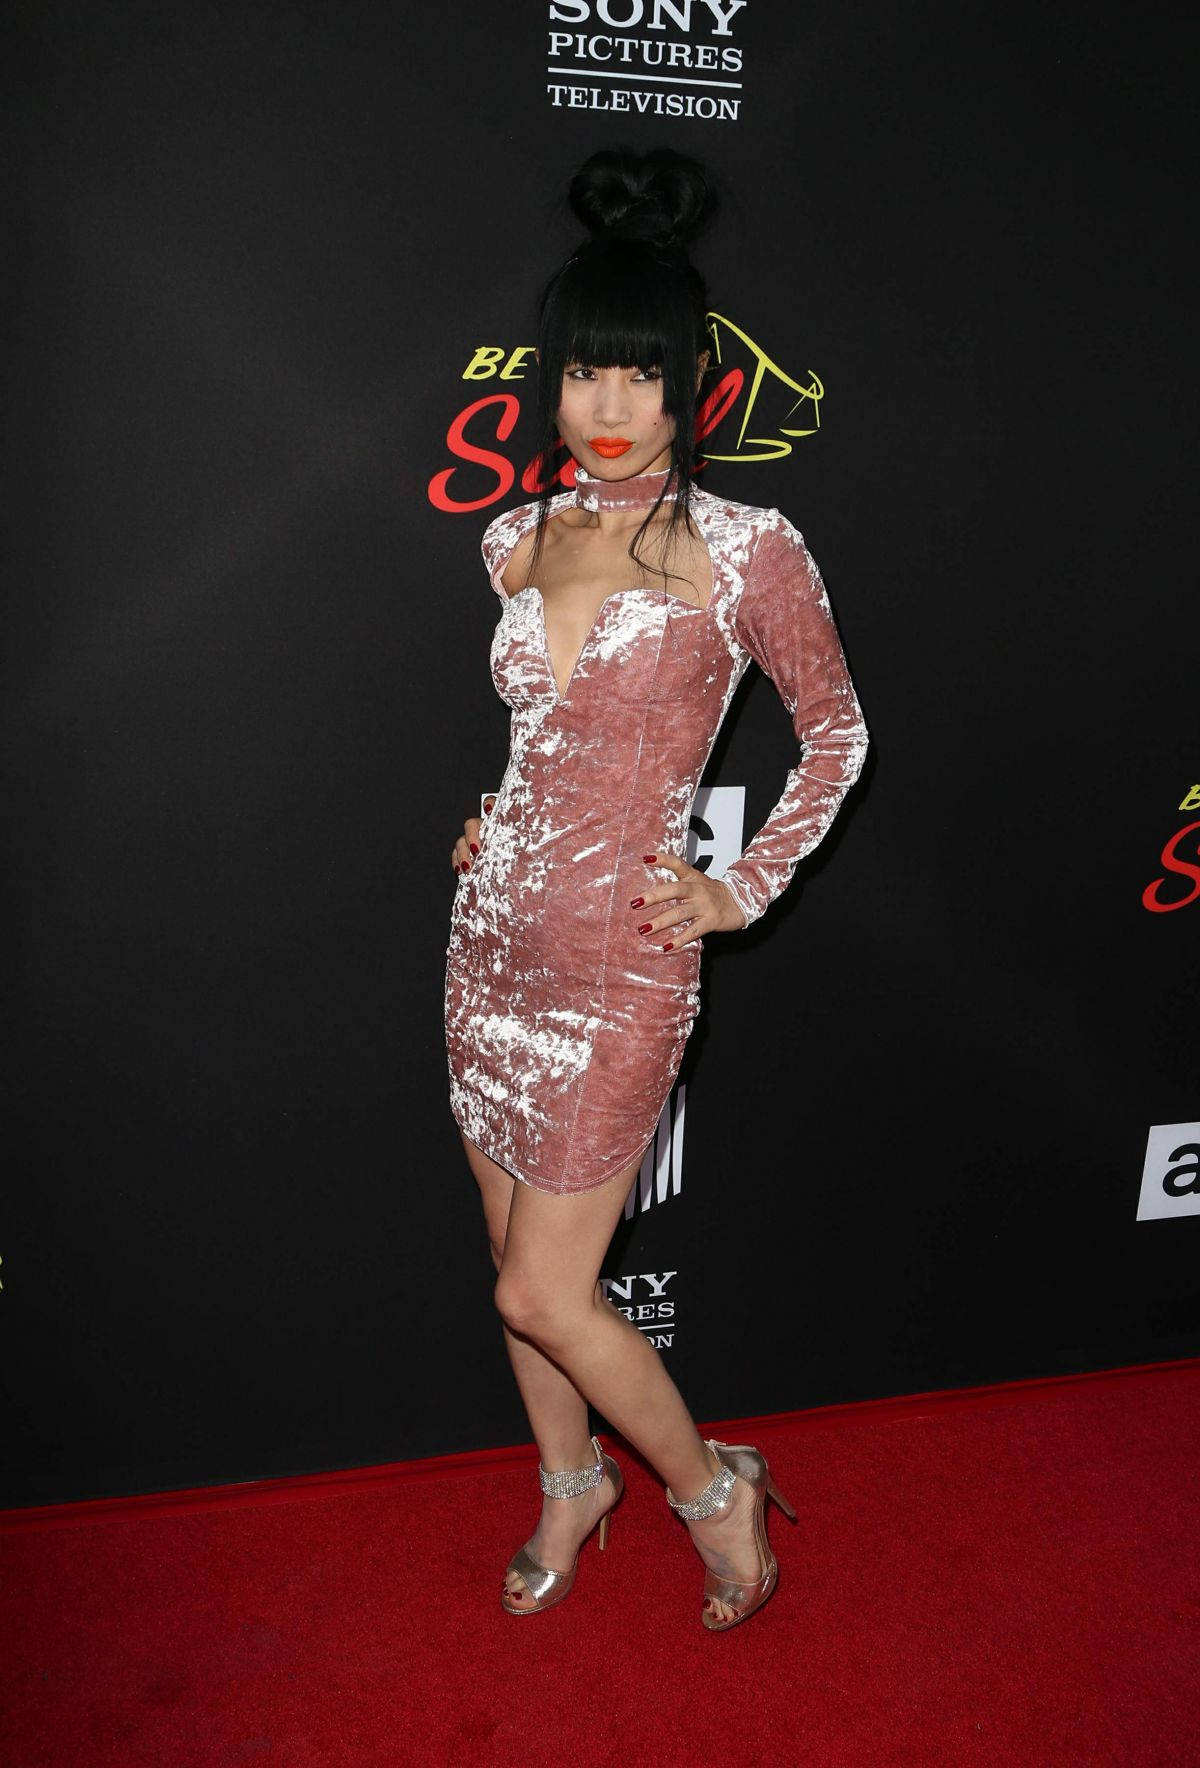 Cleavage Bai Ling naked (77 photos), Ass, Is a cute, Boobs, cleavage 2017